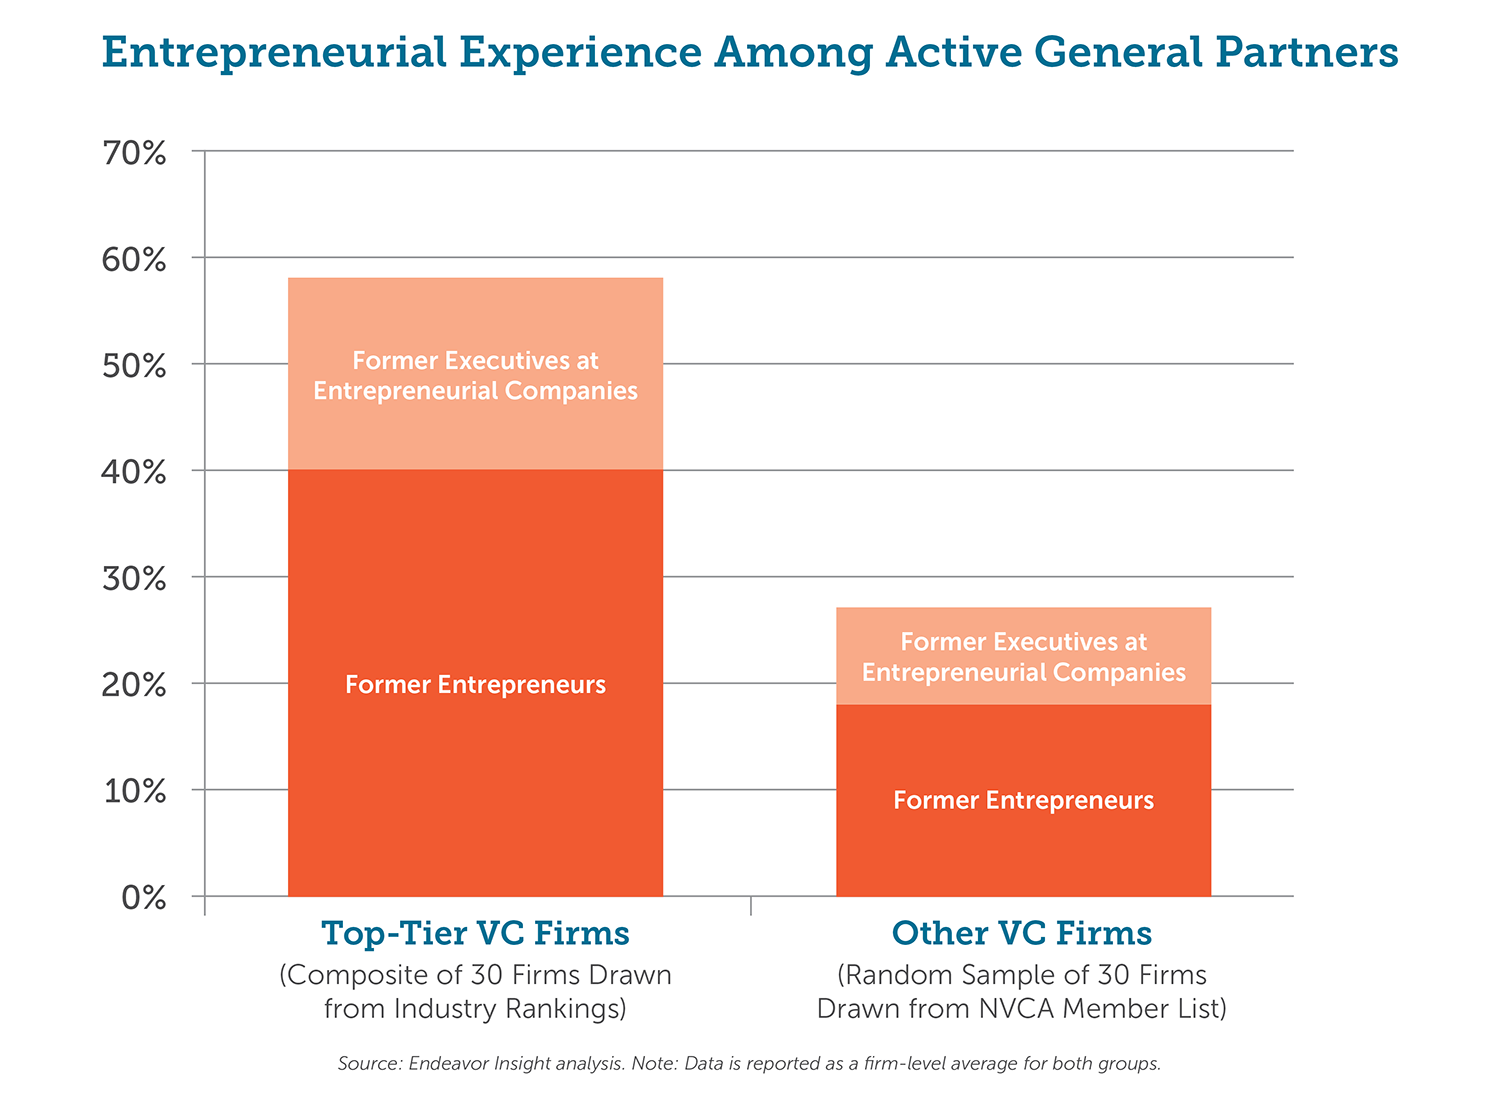 Graphic - Entrepreneurial Experience